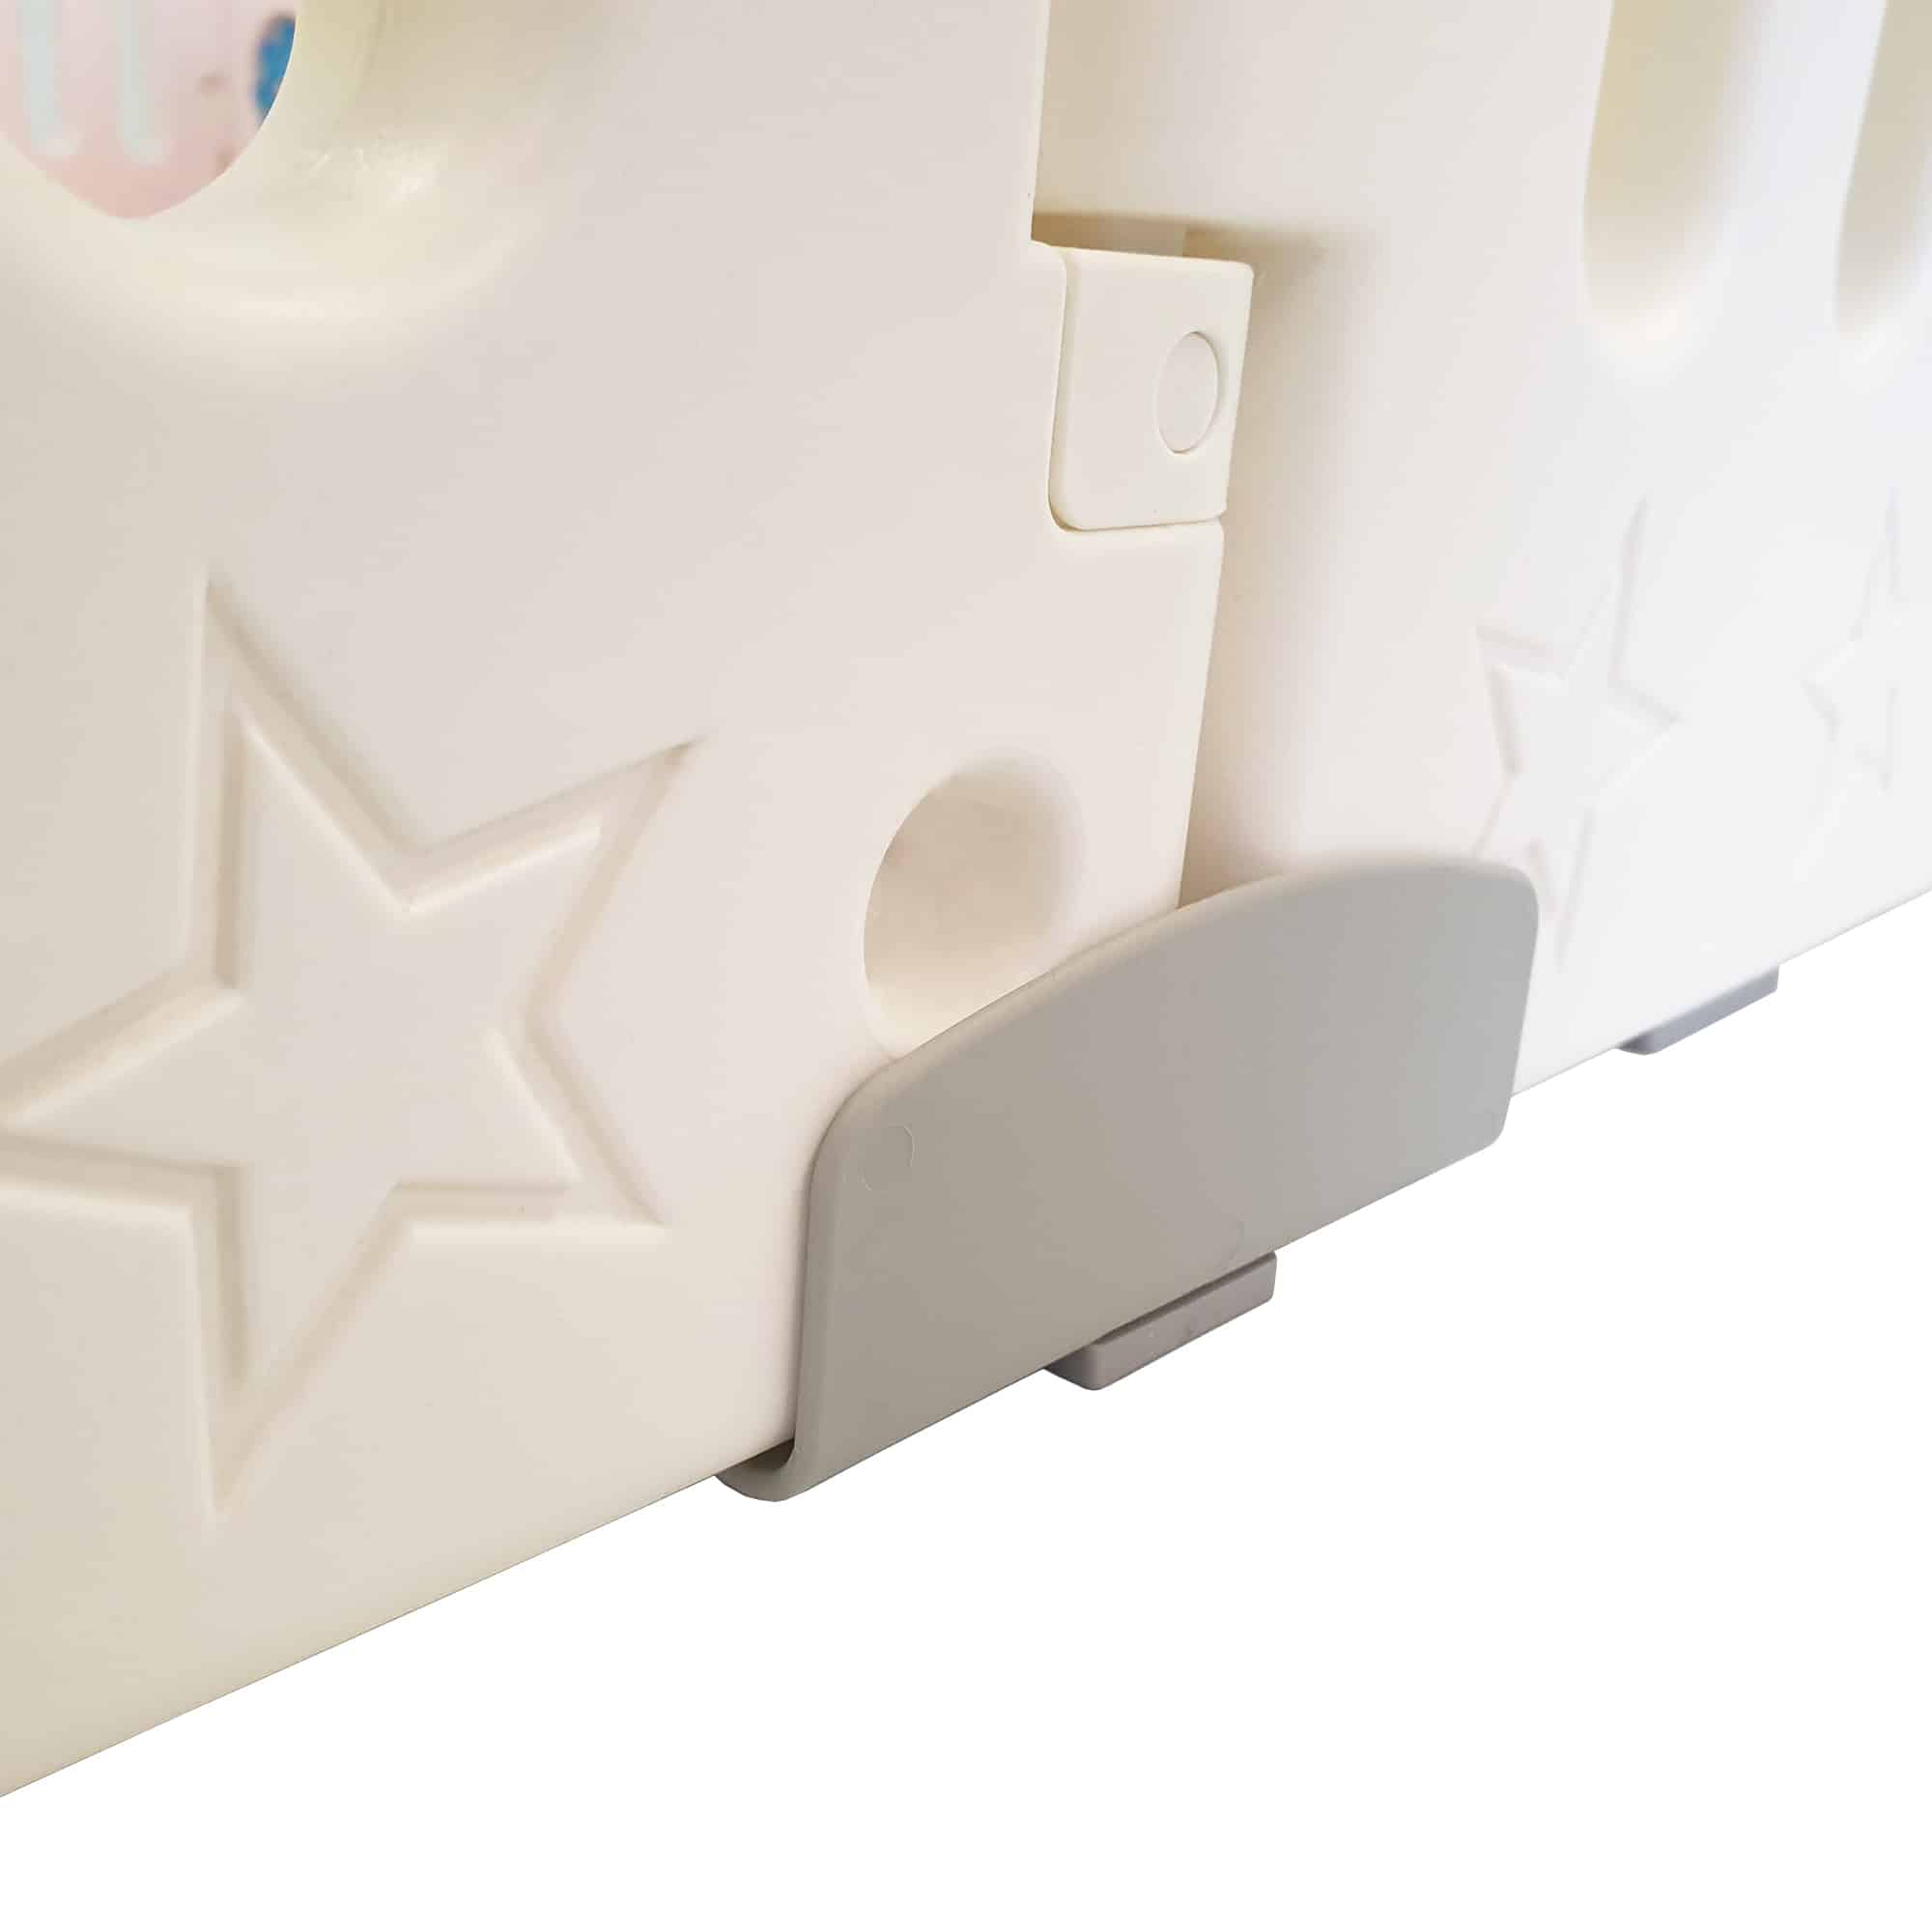 Securing clips are also included to give the playpen more stability.